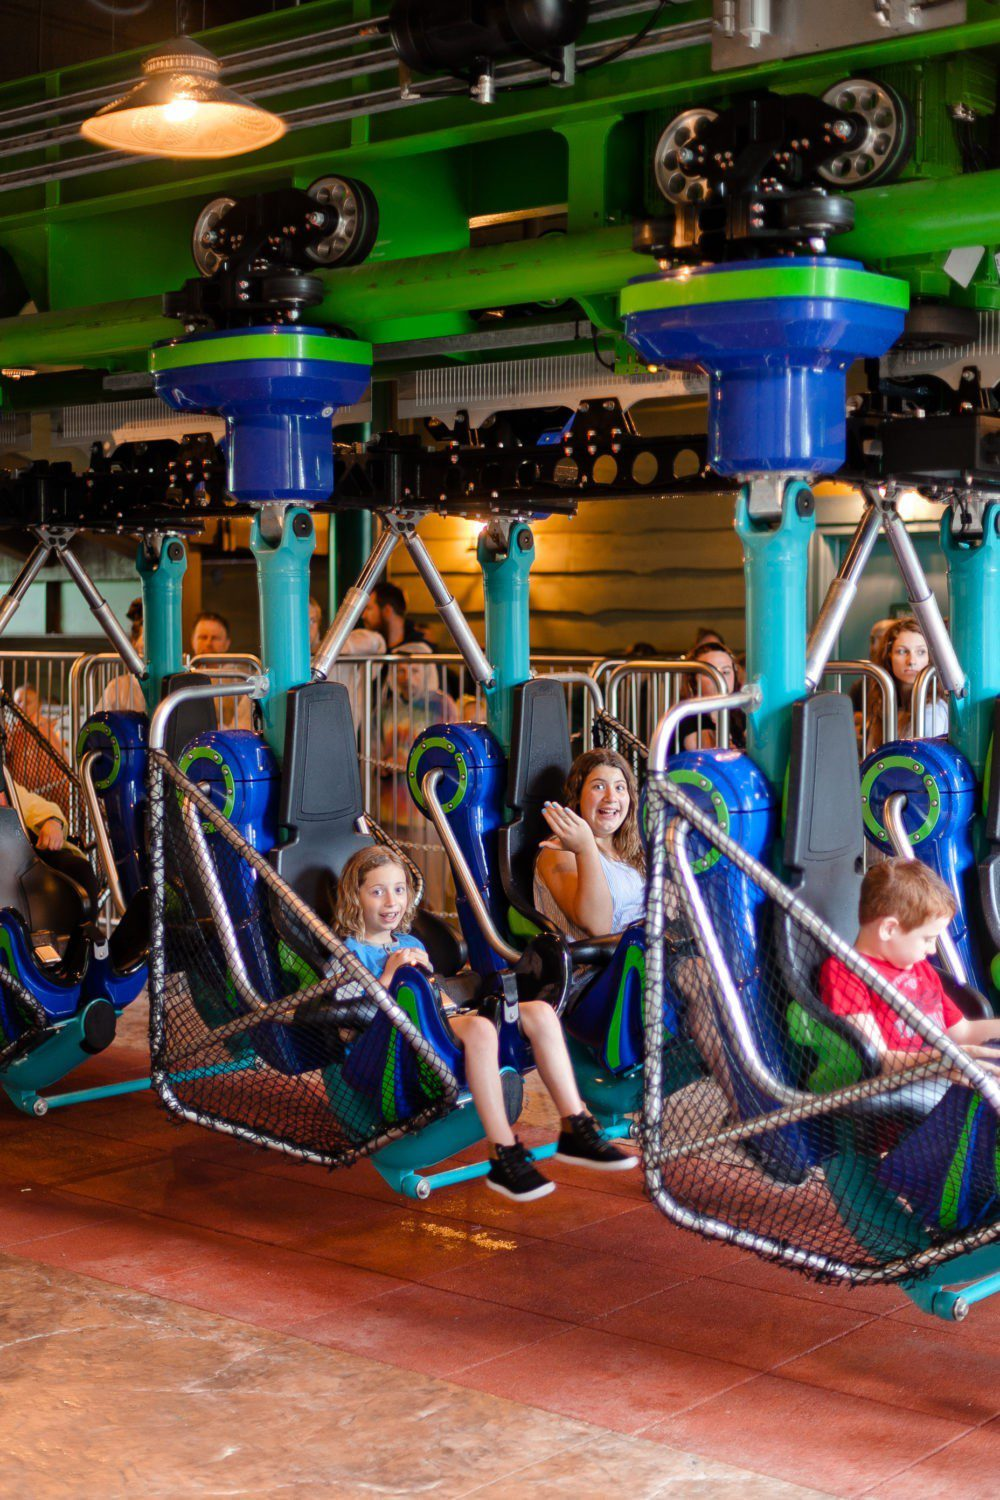 A Day at Dollywood and the new Wildwood Grove | VIDEO with Southern Living and Tabitha Blue of Fresh Mommy Blog | A Day at Dollywood and the new Wildwood Grove | VIDEO with Southern Living by popular Florida travel blog, Fresh Mommy Blog: image of 3 young kids sitting on a roller coaster in Dollywood park.